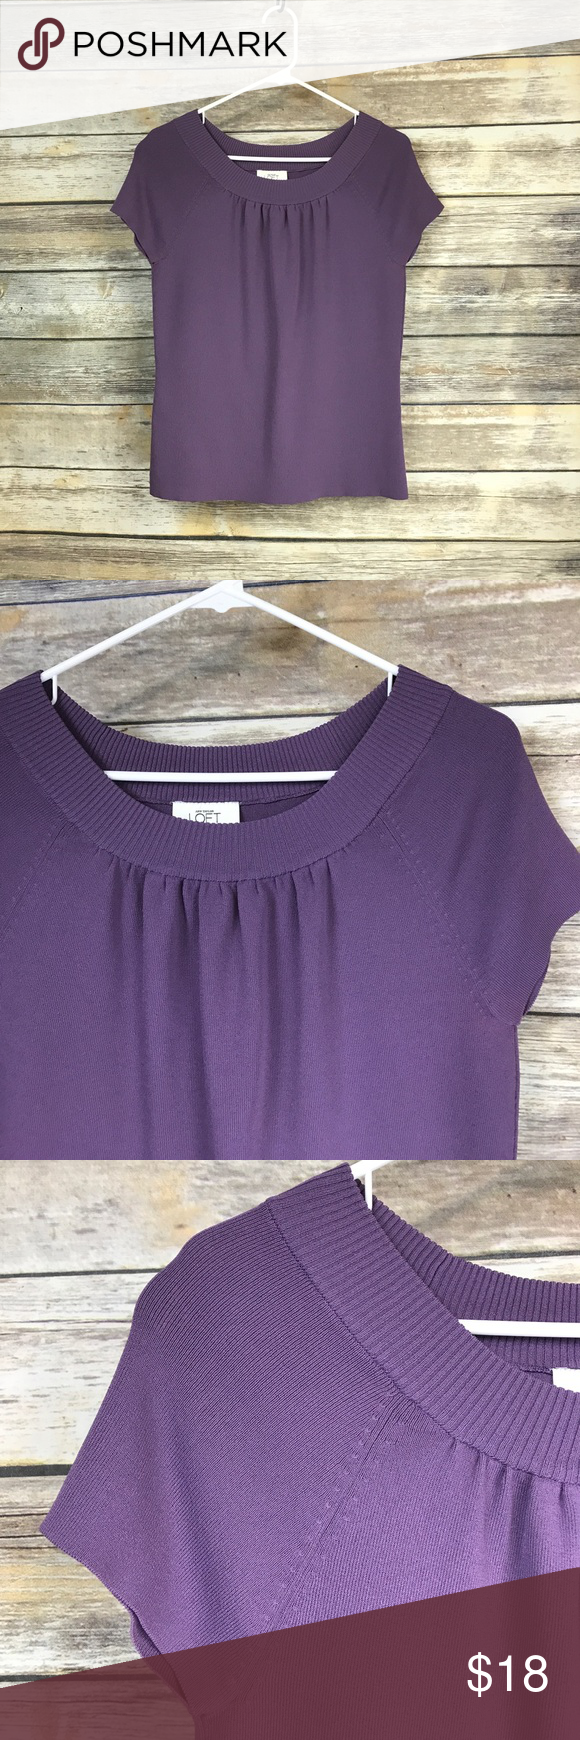 ⚫️Ann Taylor LOFT purple shirt sleeve top Stretchy material, size Medium. LOFT Tops